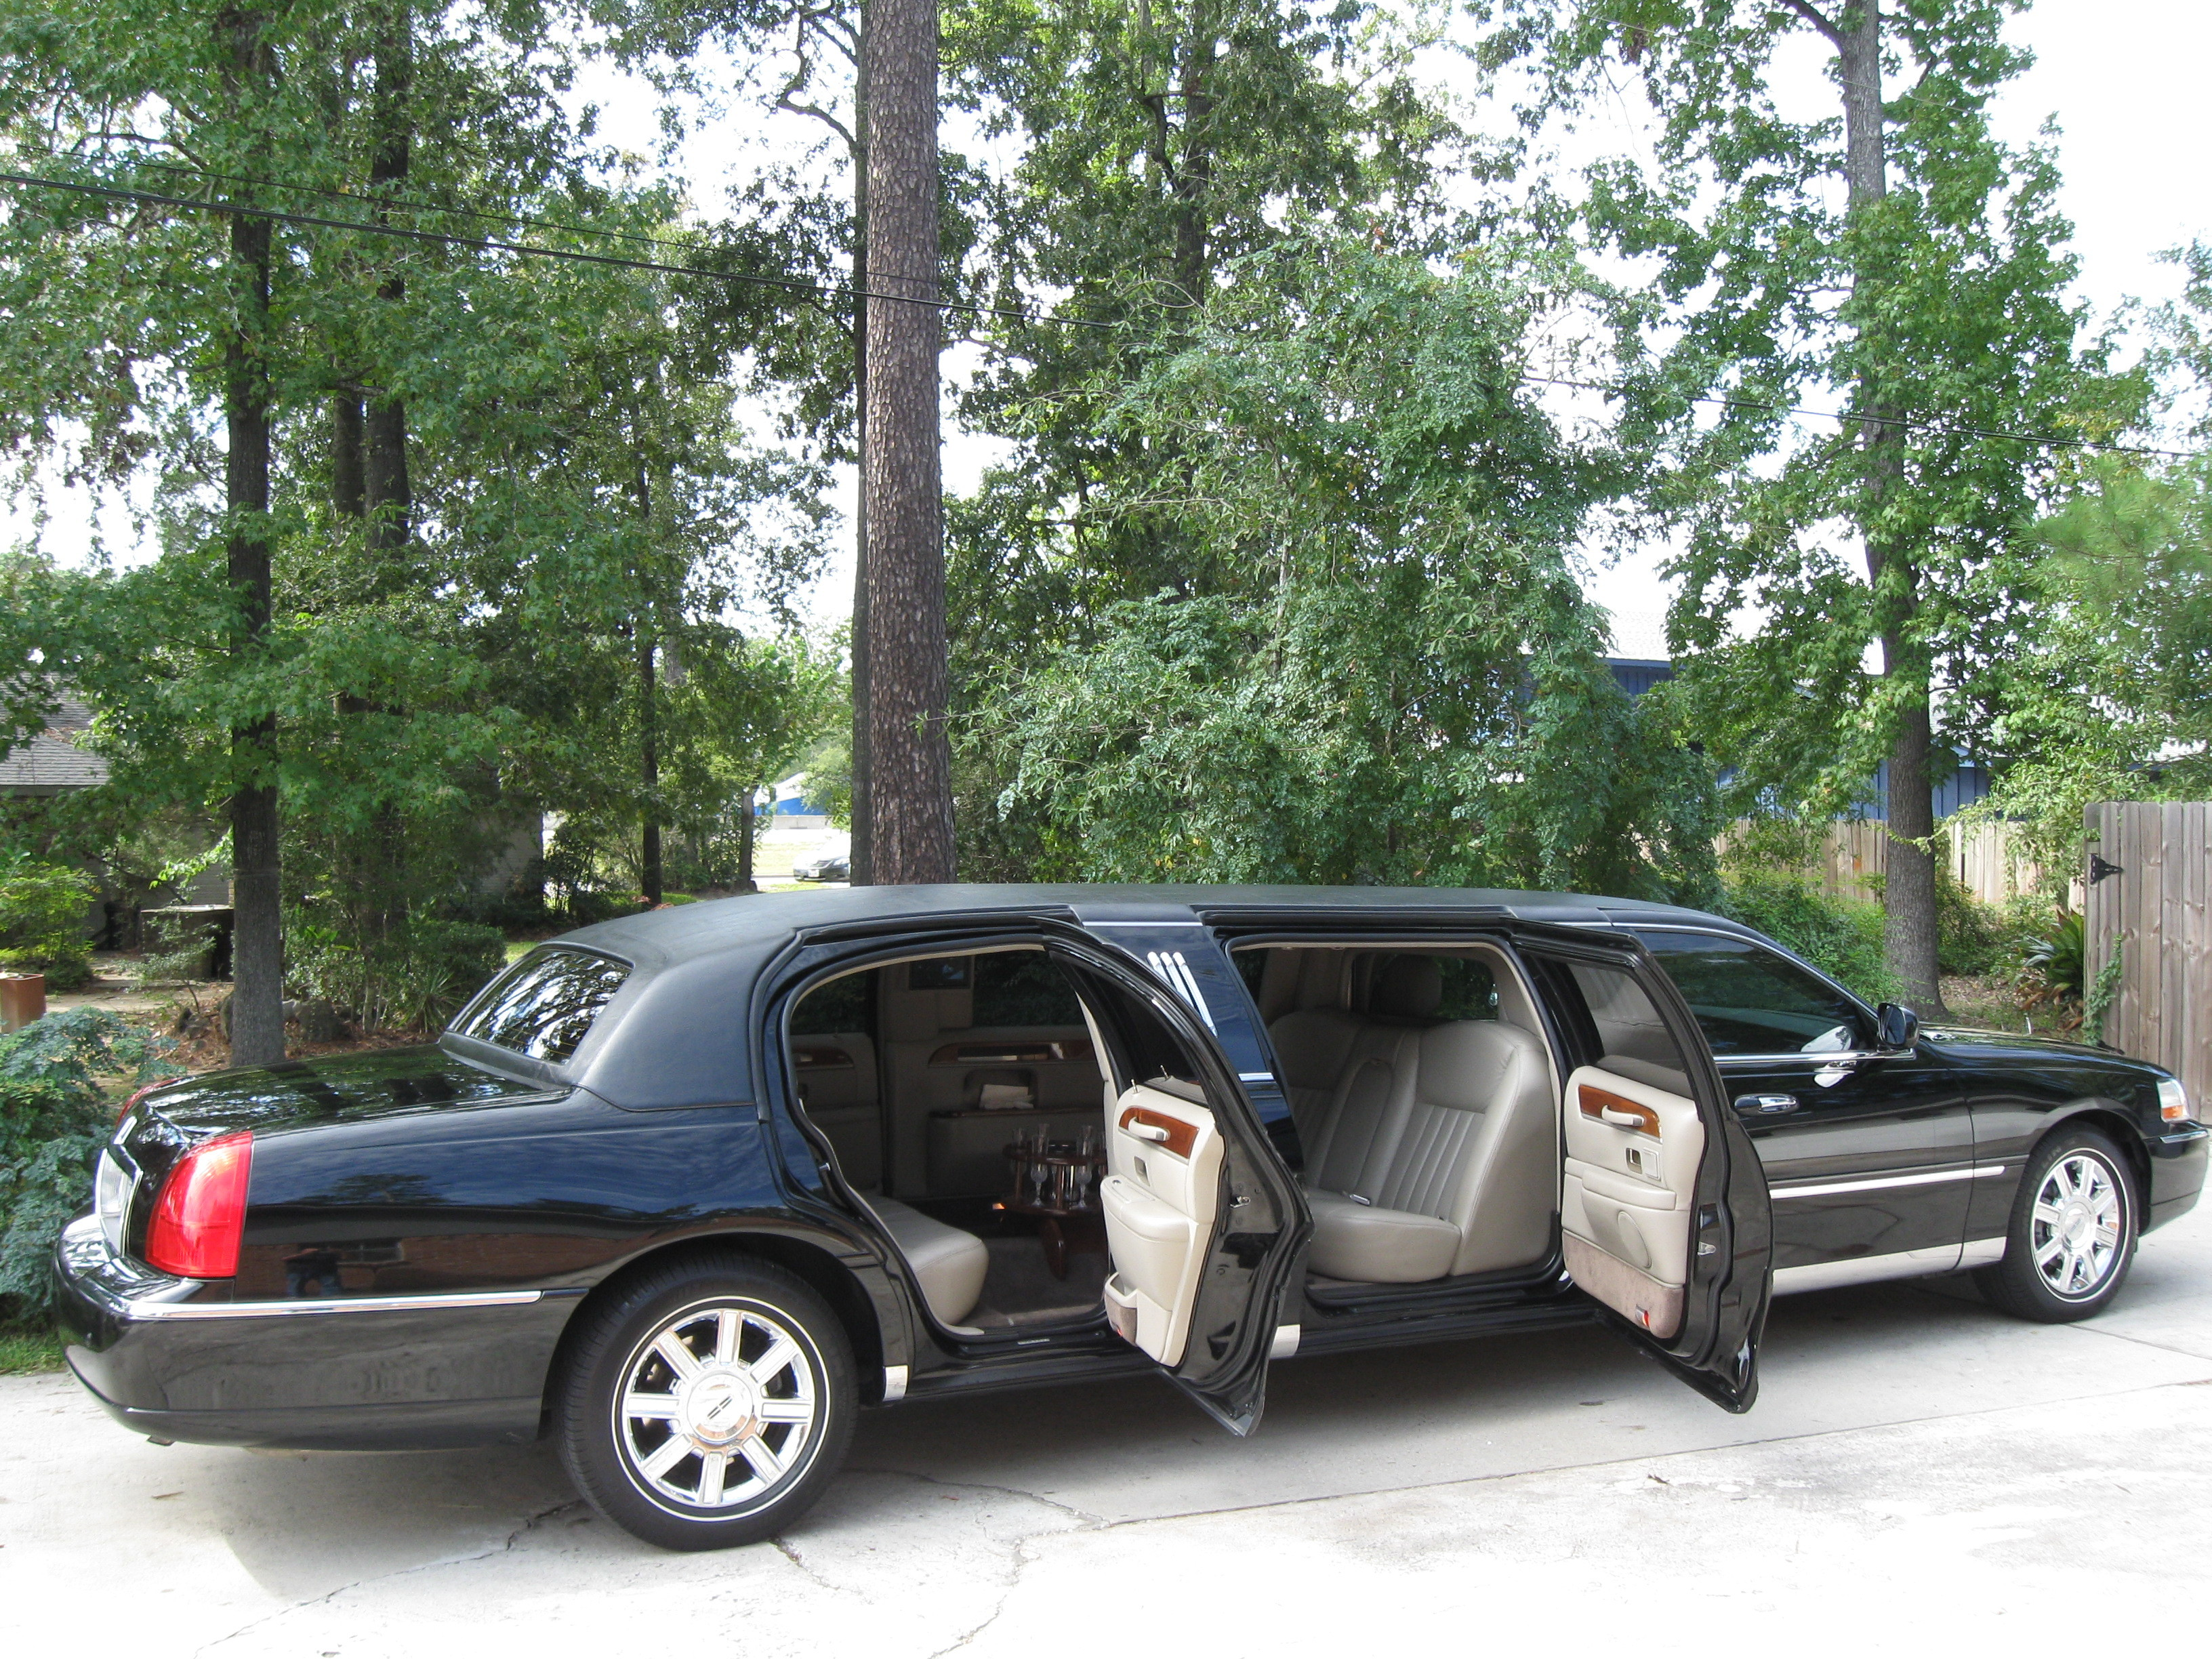 black, Wedding, Limousine, inc, Limo, Limos, Luxury, Corporate limousines of tx